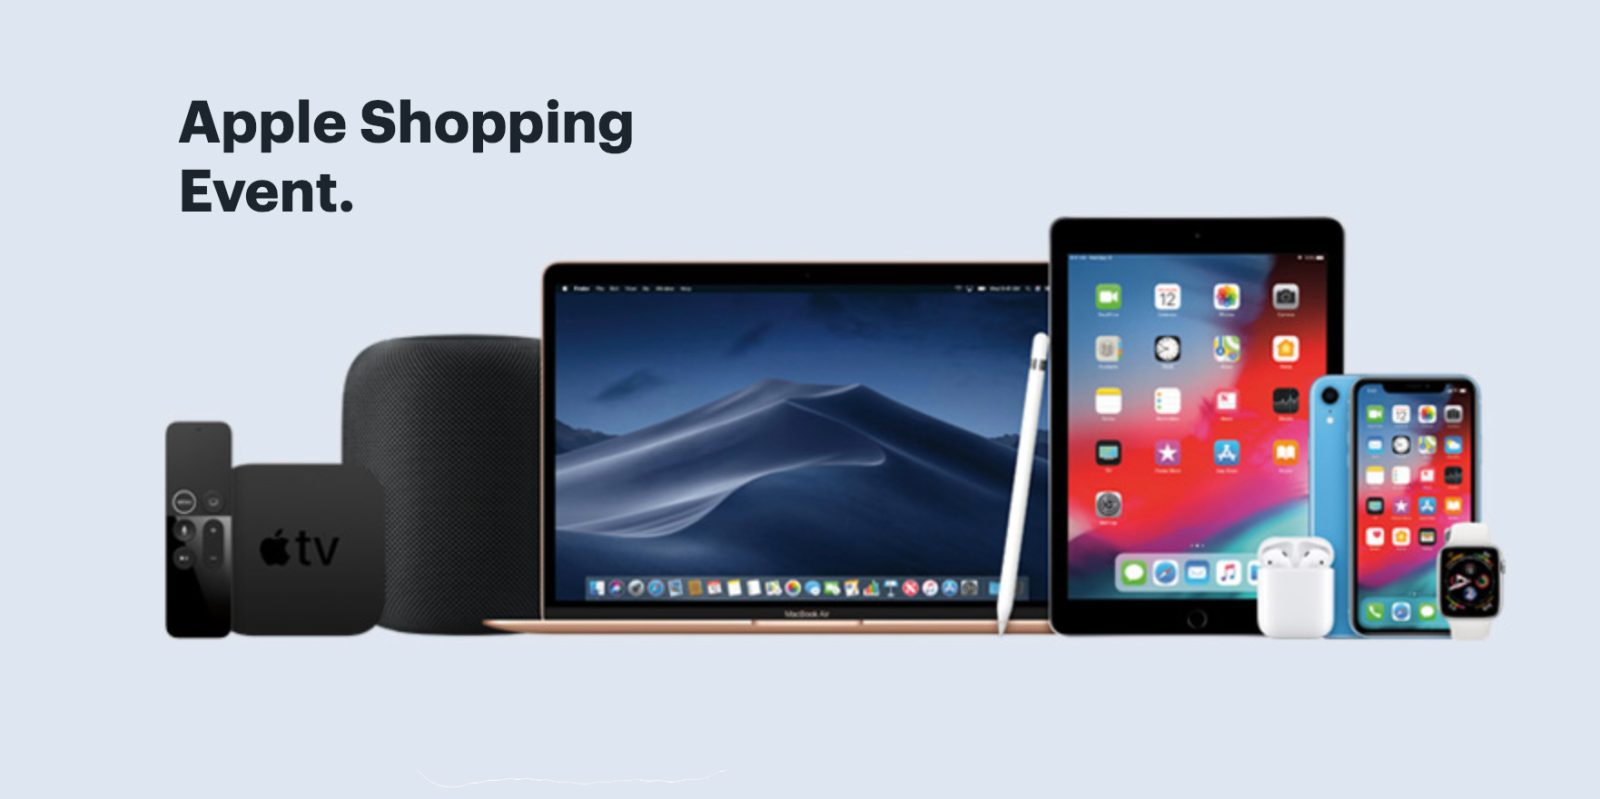 dcd14b61c291 Best Buy s Apple shopping event offers deals on latest MacBooks ...